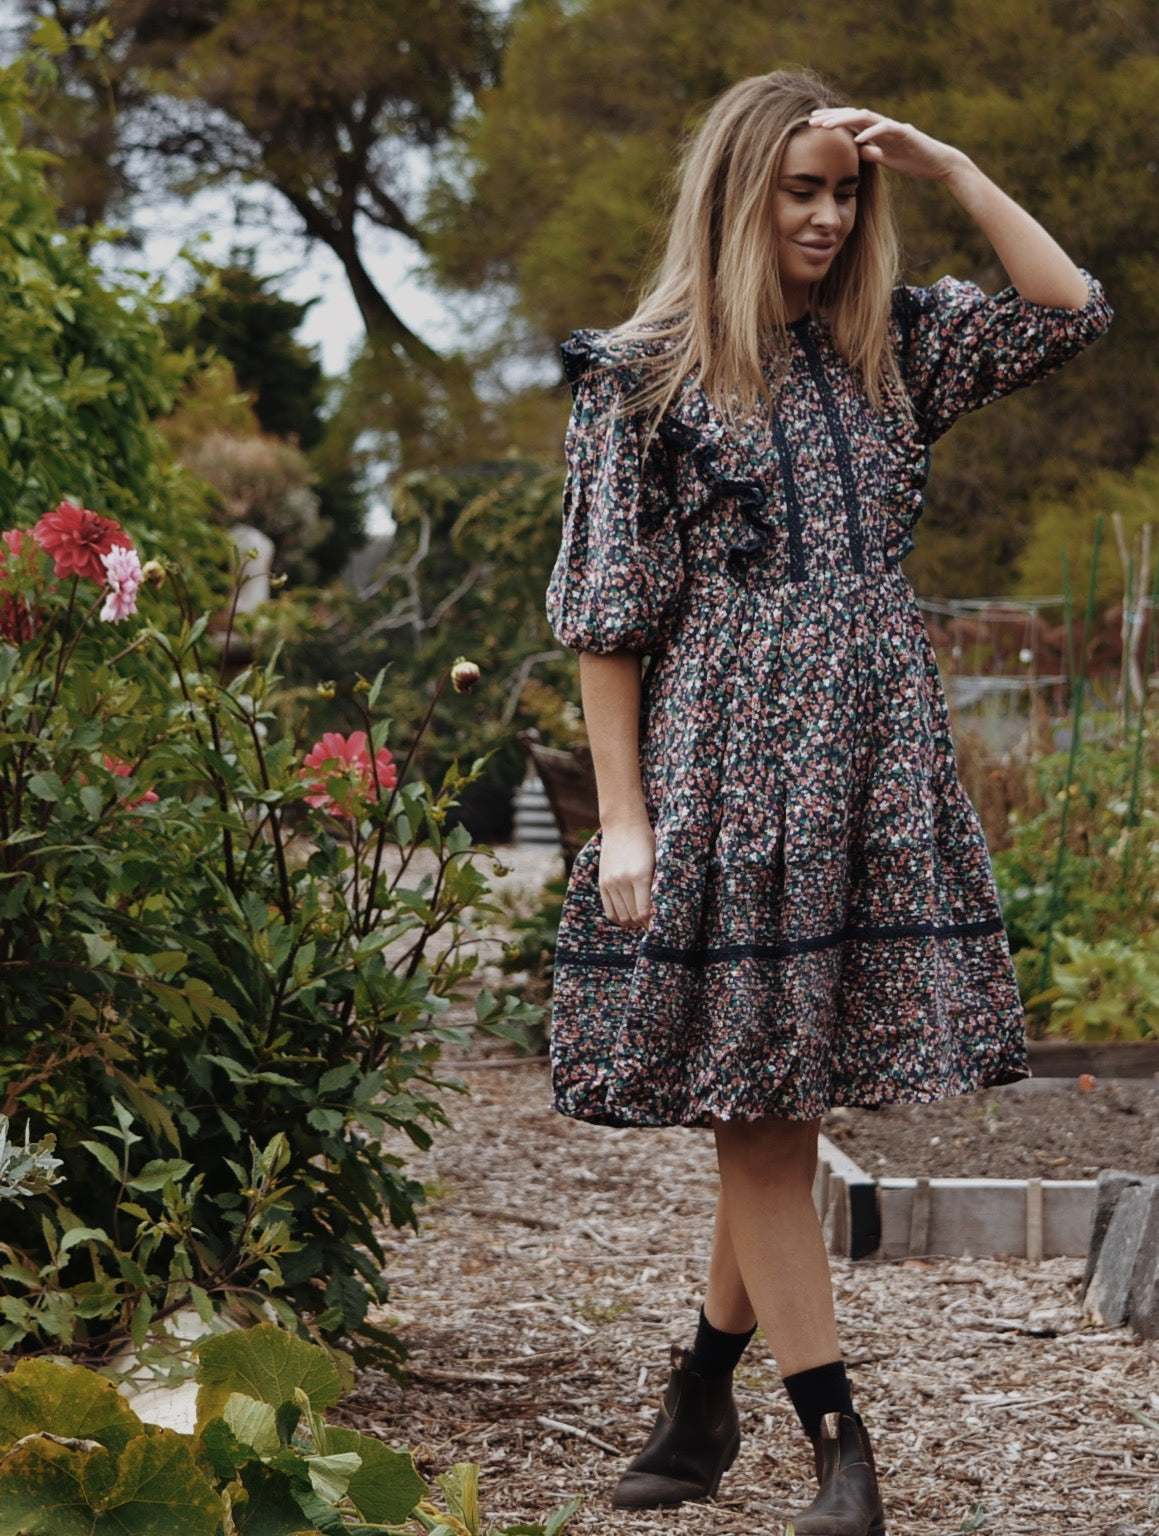 SMALL RESTOCK - CLEMENTINE DRESS PINWALE CORD NAVY DITSY FLORAL